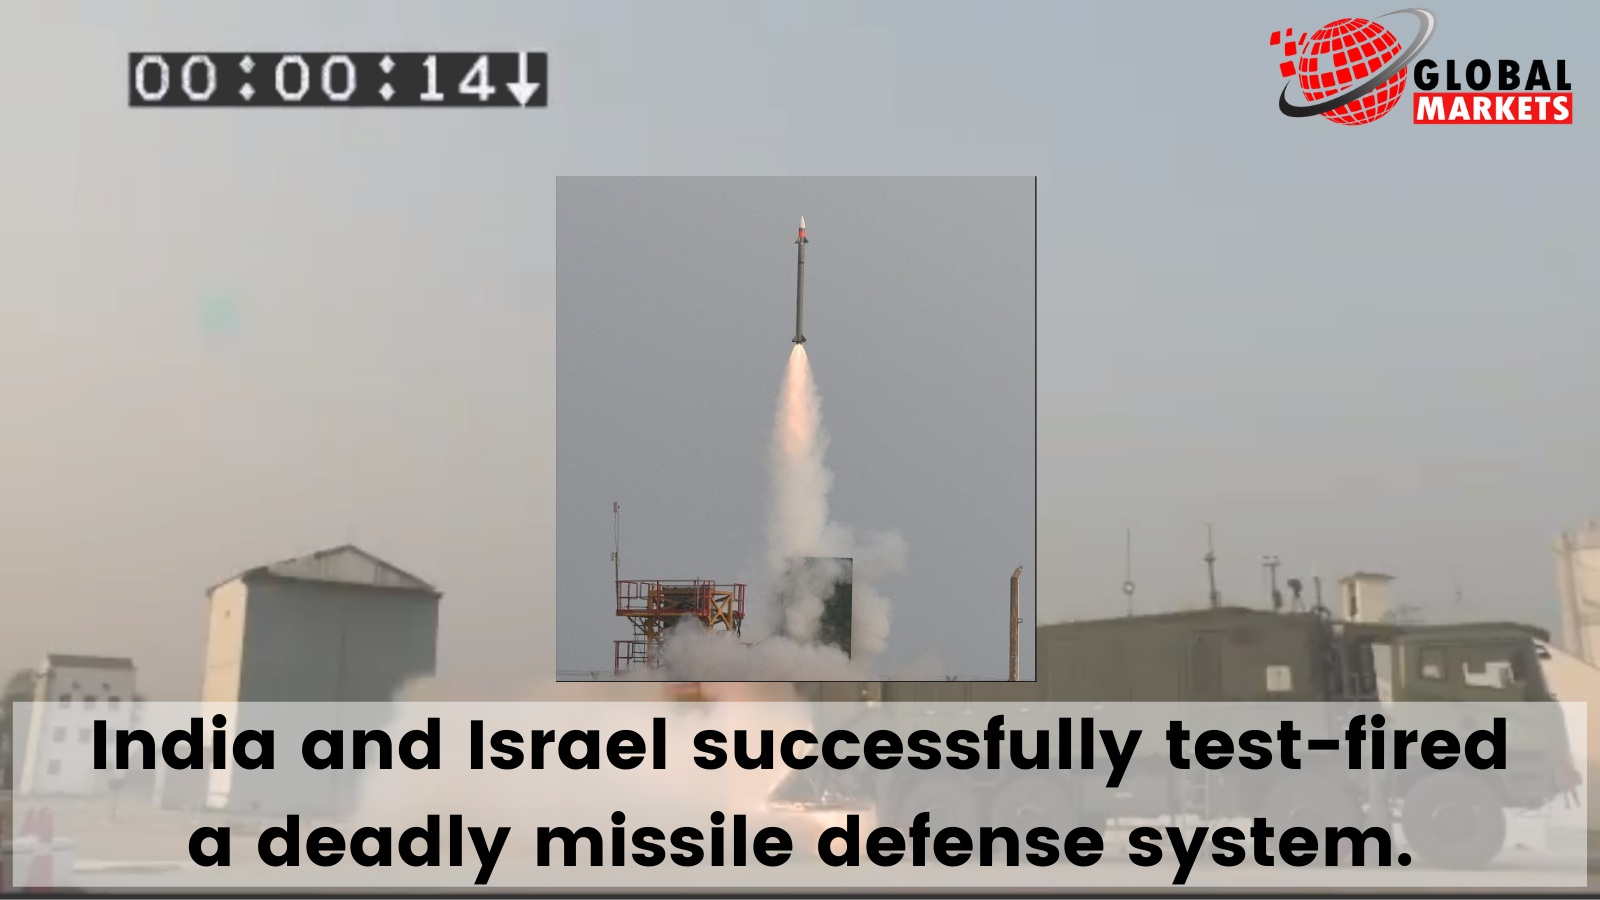 India-Israel jointly test-fires deadly missile defense system.